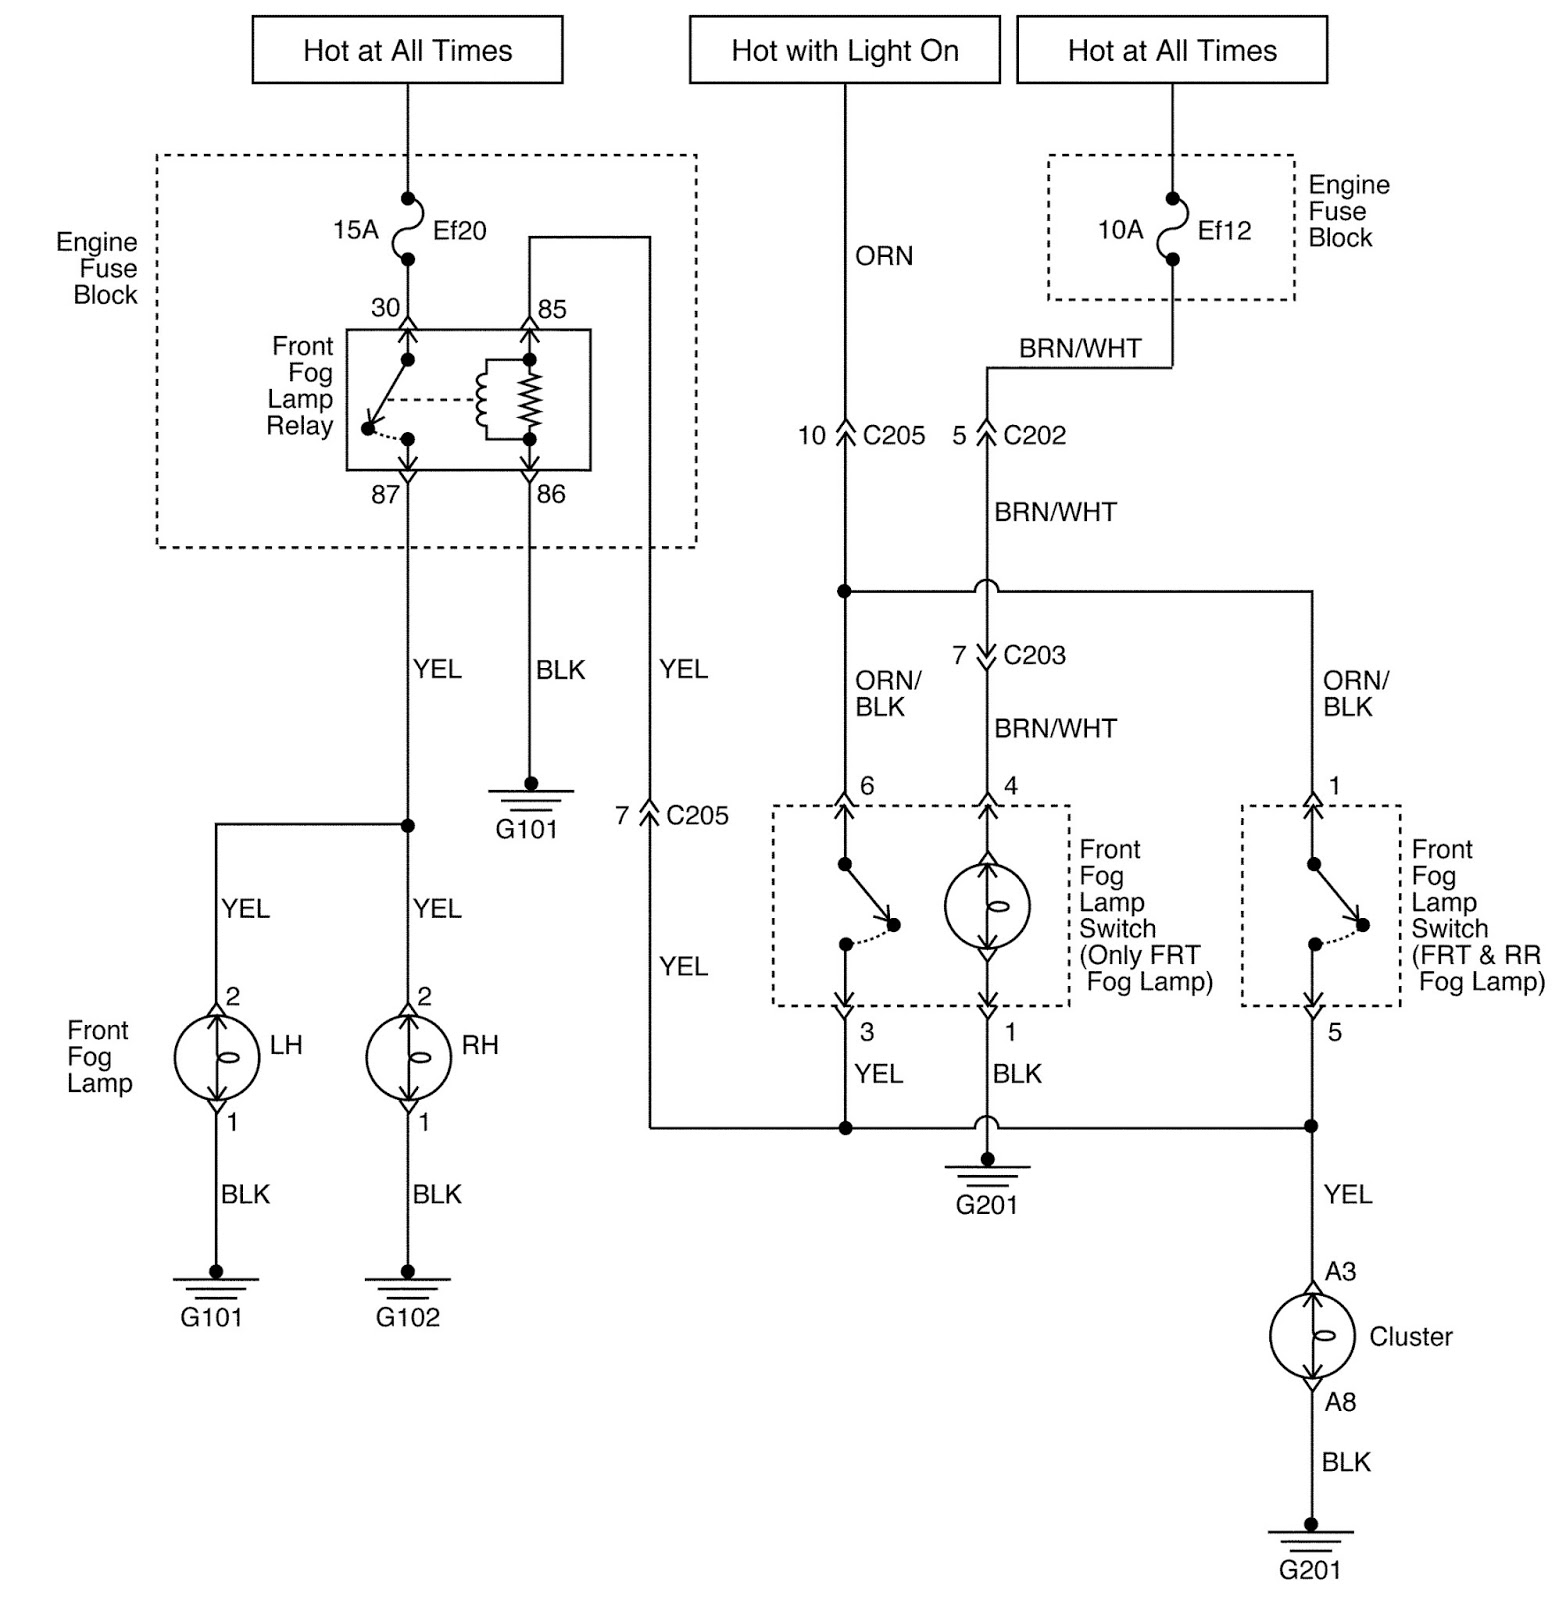 daewoo matiz wiring diagram architecture section somurich